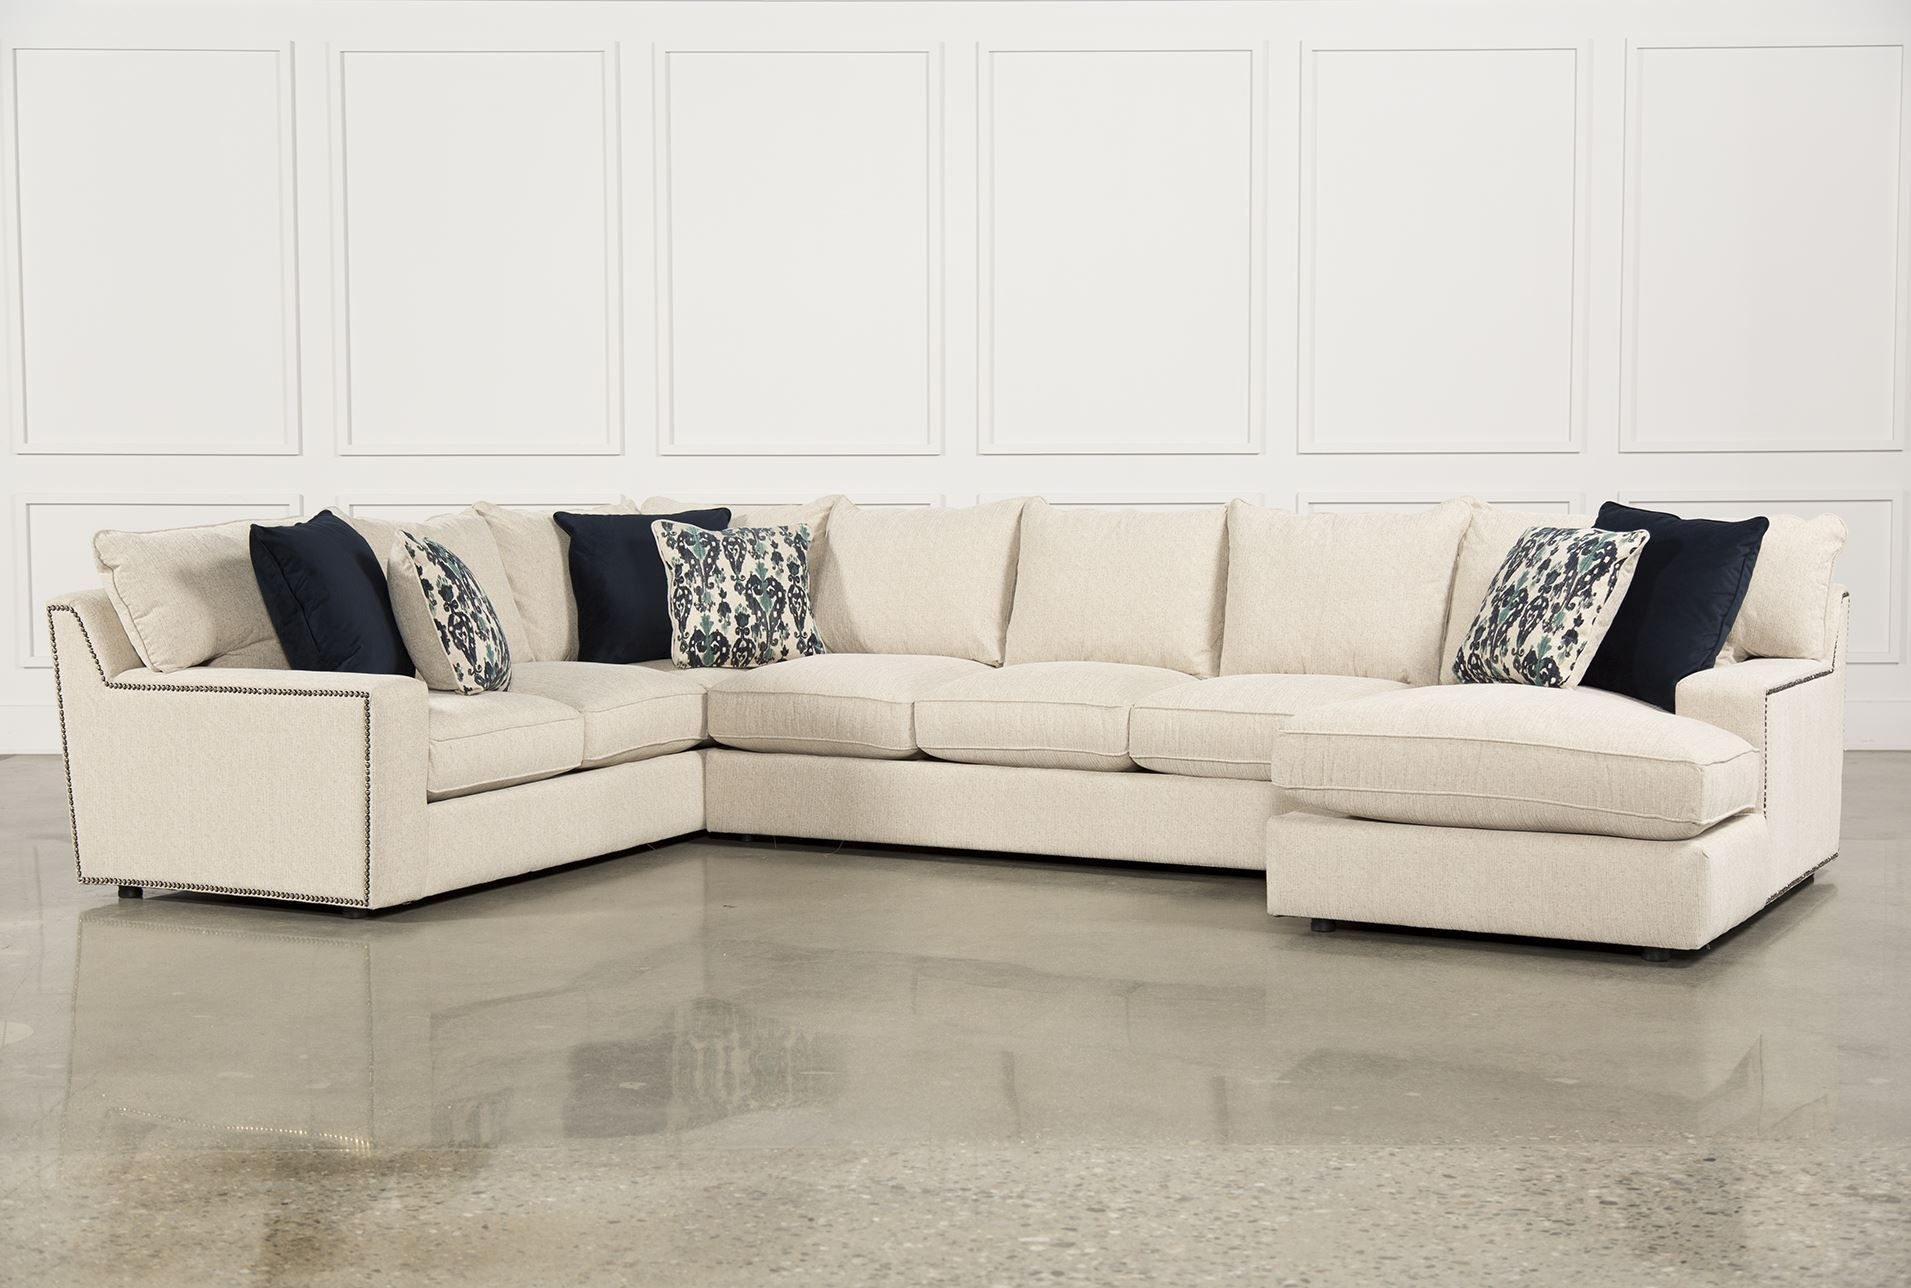 Rennell 3 Piece Sectional W/raf Chaise | Home Decor Spanish / Tuscan Throughout Meyer 3 Piece Sectionals With Raf Chaise (Image 20 of 25)